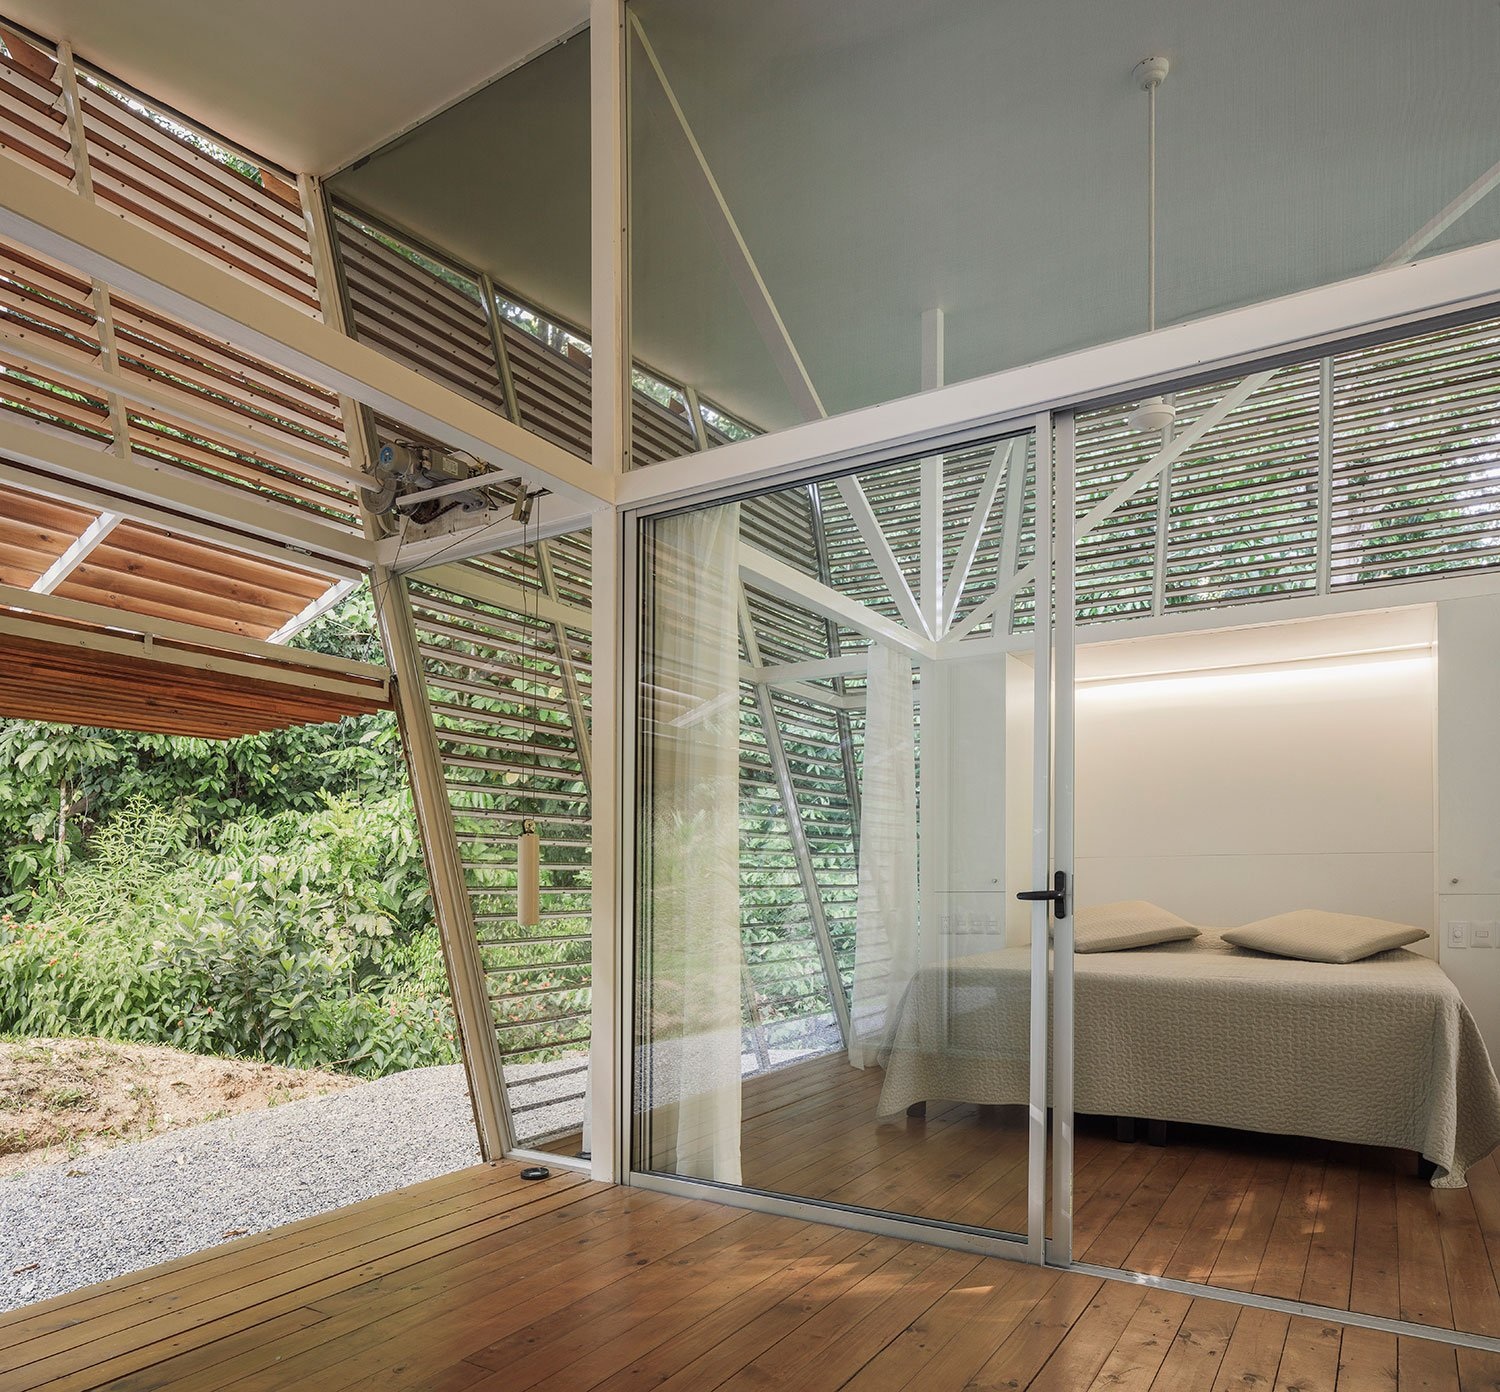 The more private sections of the house can be closed off with different layers of glass sliders and curtains, allowing for changing degrees of spatial separation or social integration. Fernando Alda